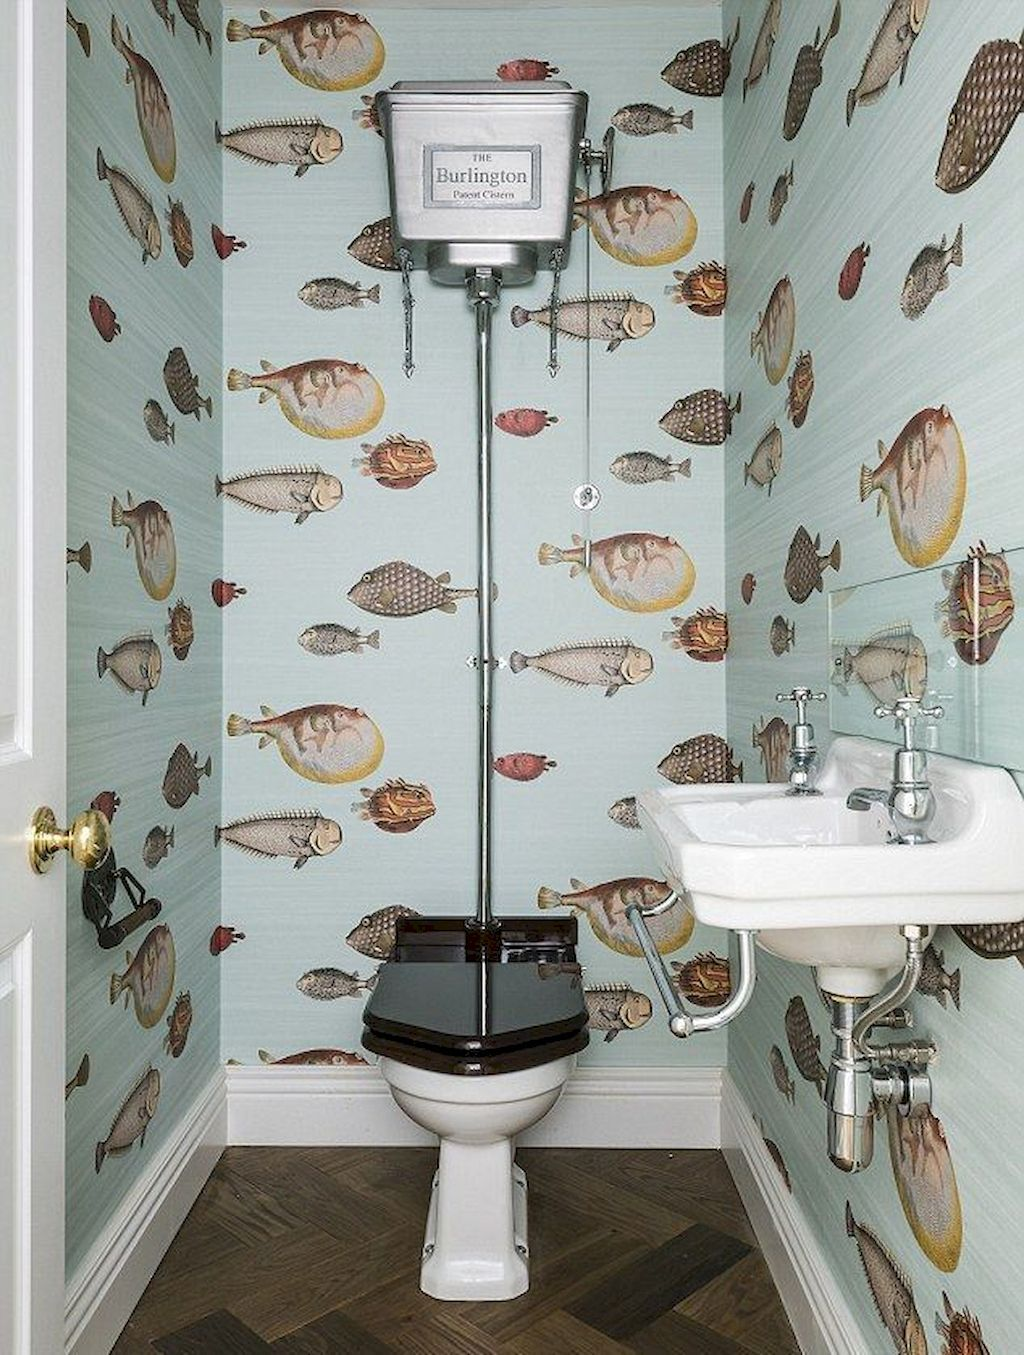 Space Saving Toilet Design For Small Bathroom Home To Z Small Bathroom Wallpaper Downstairs Toilet Small Toilet Room